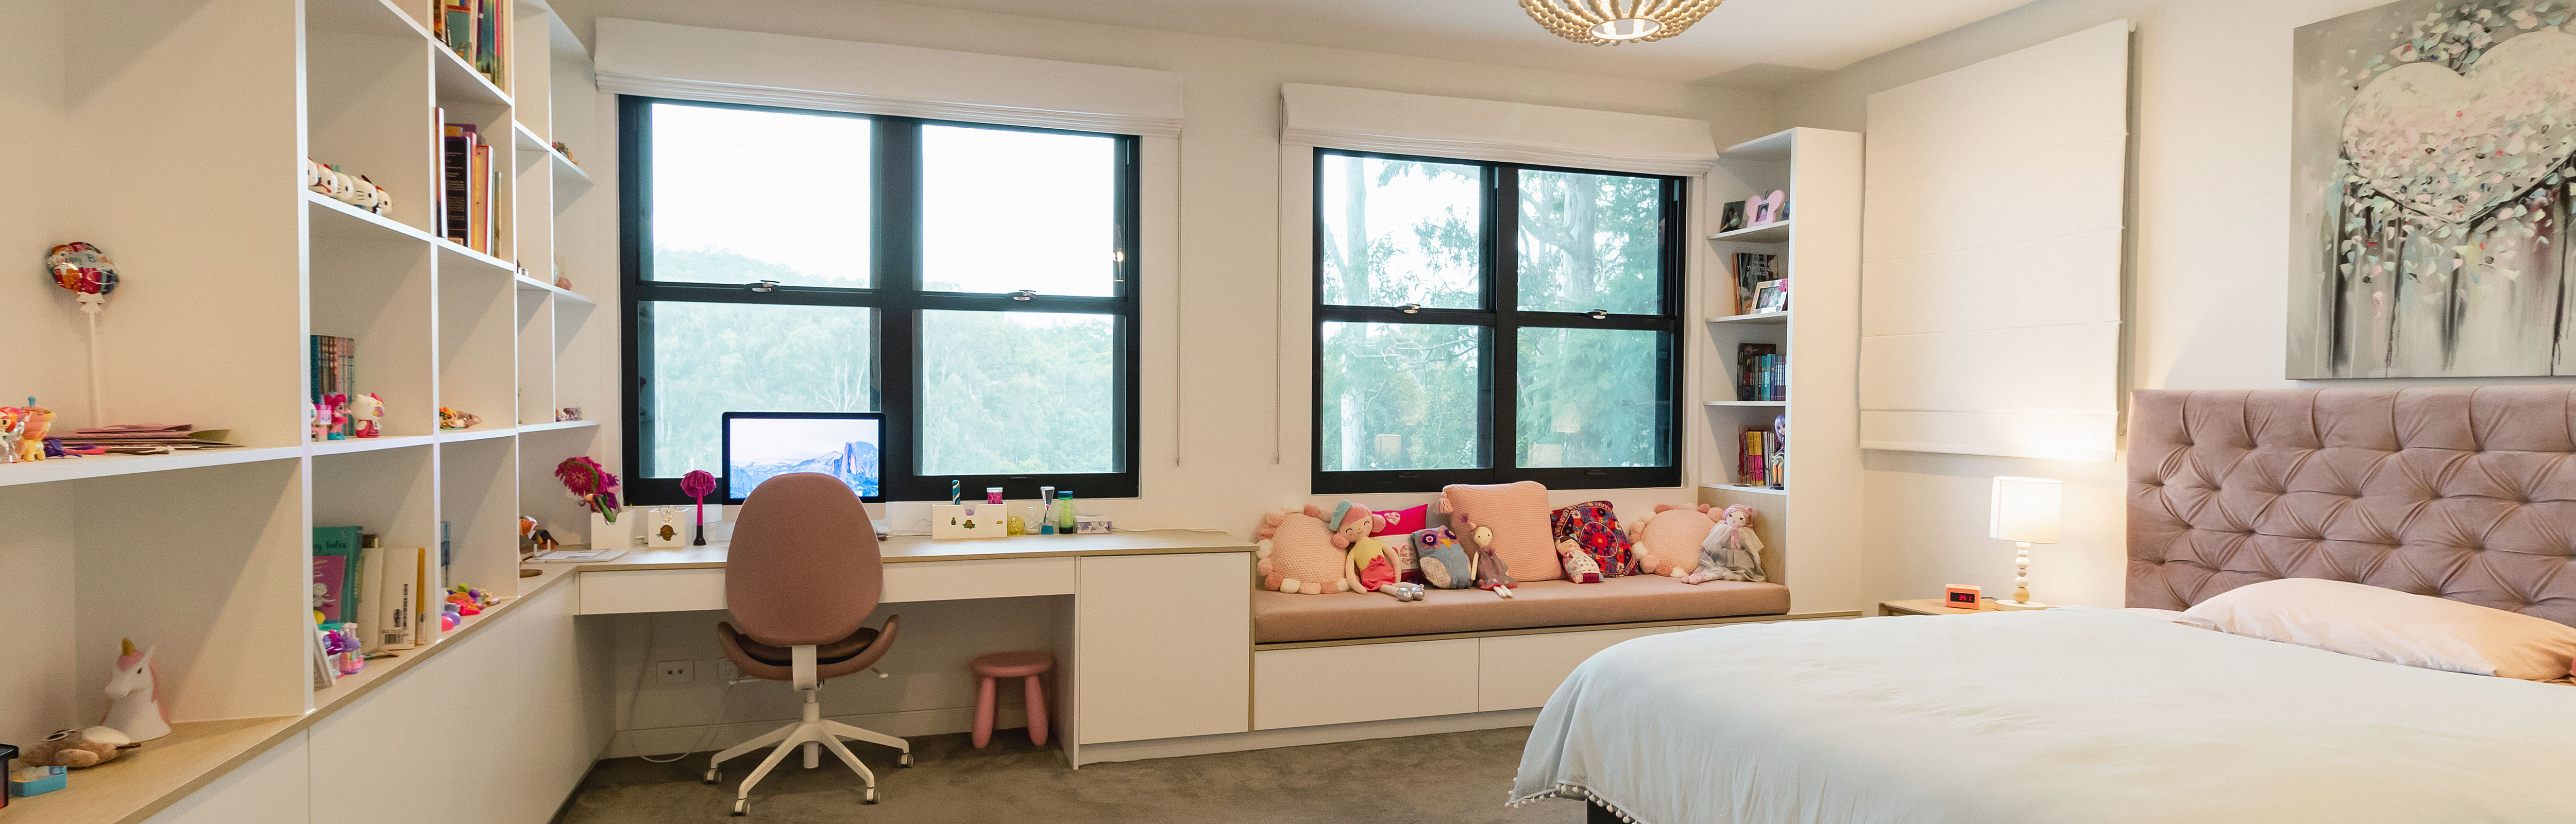 Aluminium Double Hung Windows in a bedroom